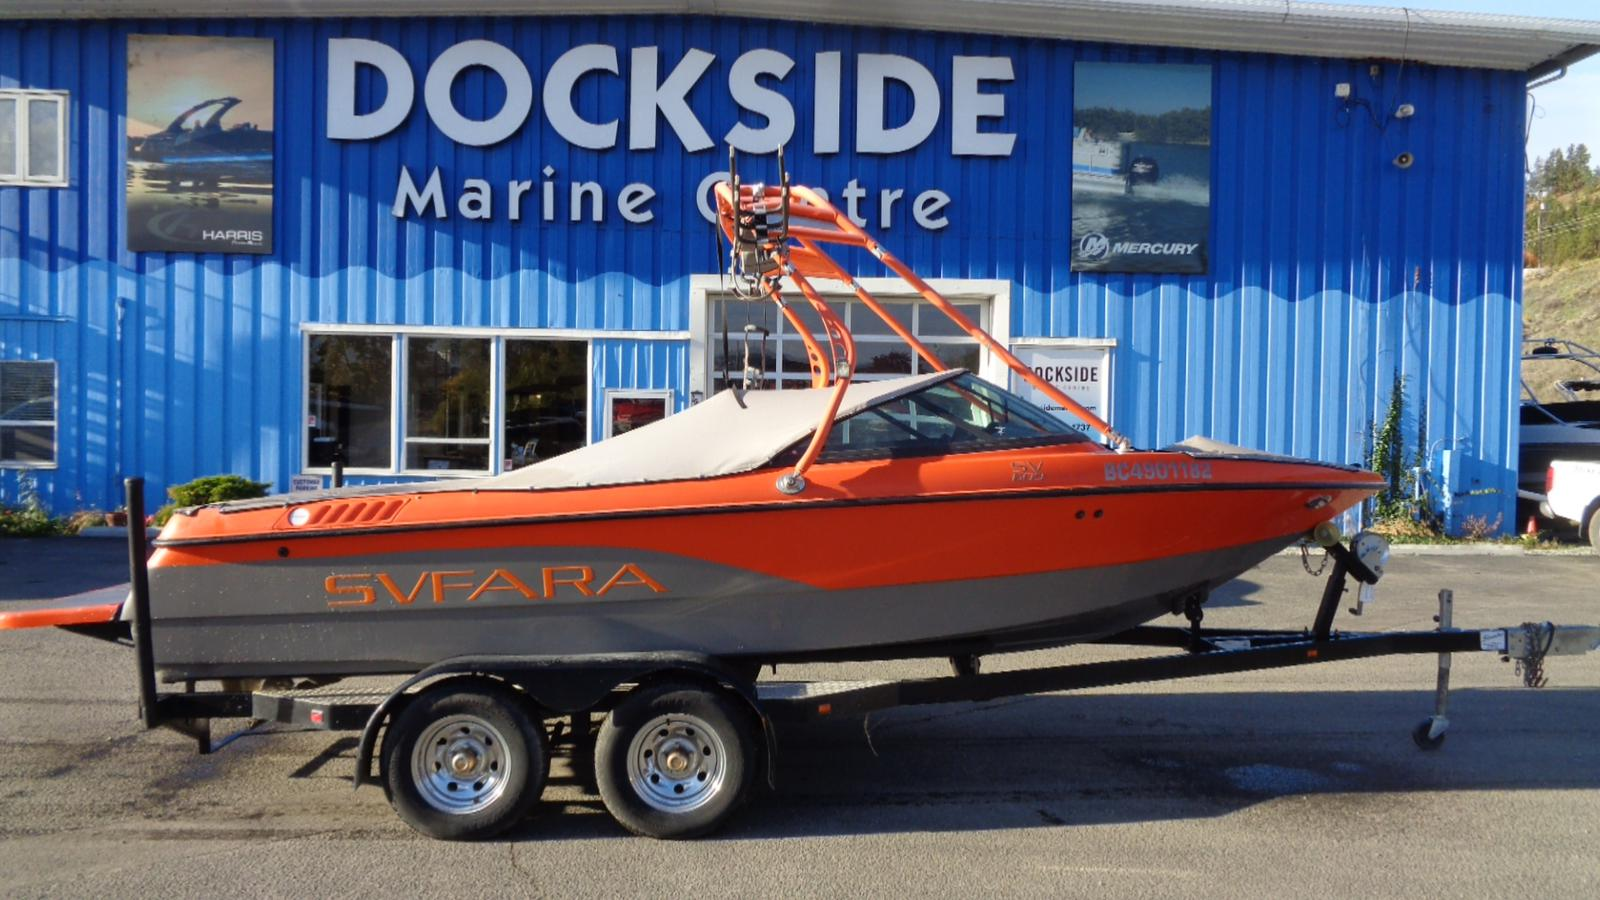 For Sale: 2004 Campion Svfara Sv 609 20ft<br/>Dockside Marine Centre, LTD.